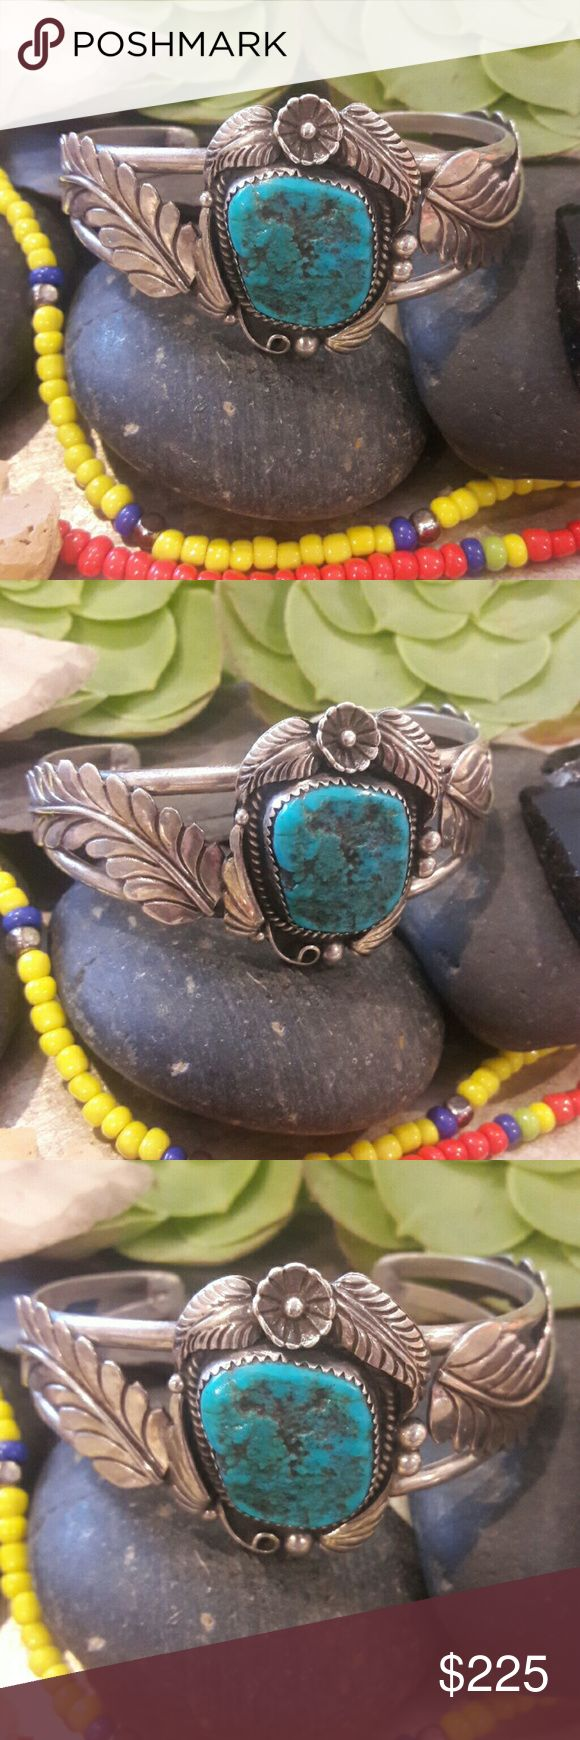 """Vintage Sterling Navajo Signed Turquoise Cuff Beautiful detailed cuff, with a large Turquoise nugget stone, this bracelet is signed by the artist looks to be Ashley, beautiful feathers along the stone and a squash blossom flower on the bottom or top of Turquoise depending on how you wear it, with feather design, and rain drops. Cuff is 1 1/4"""" opening, inside circumference is approximately 6"""" bezel set stone, simply beautiful!! Vintage Jewelry Bracelets"""